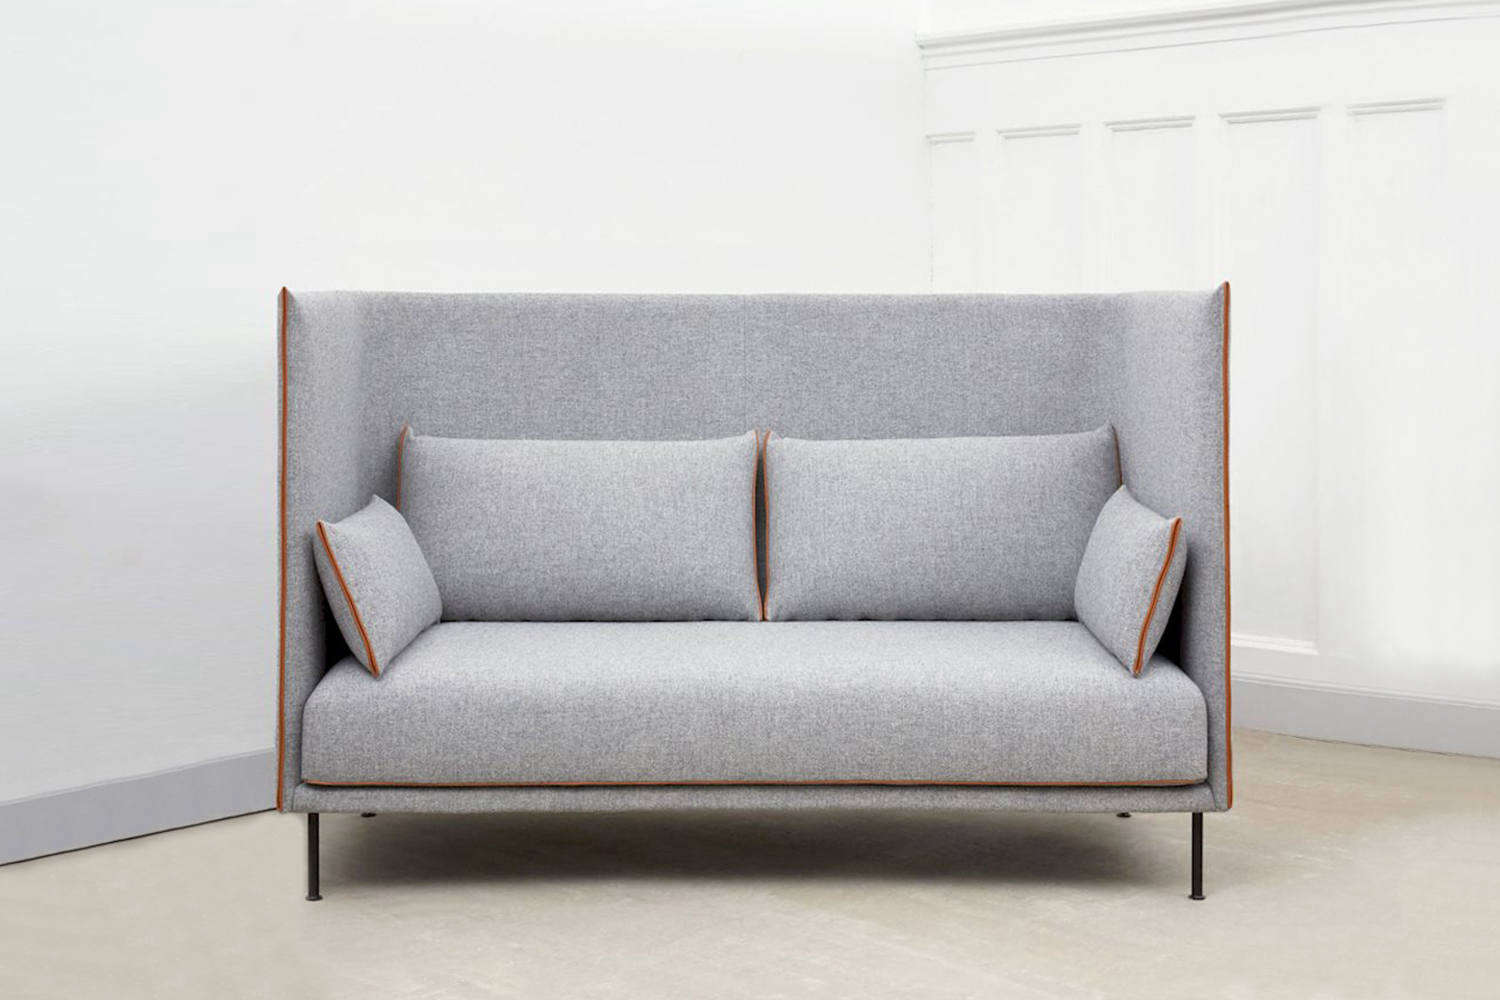 The HAY Silhouette High Backed Sofa is made with a fiberglass shell and oak frame and is covered in Kvadrat fabric with leather piping. Available as a